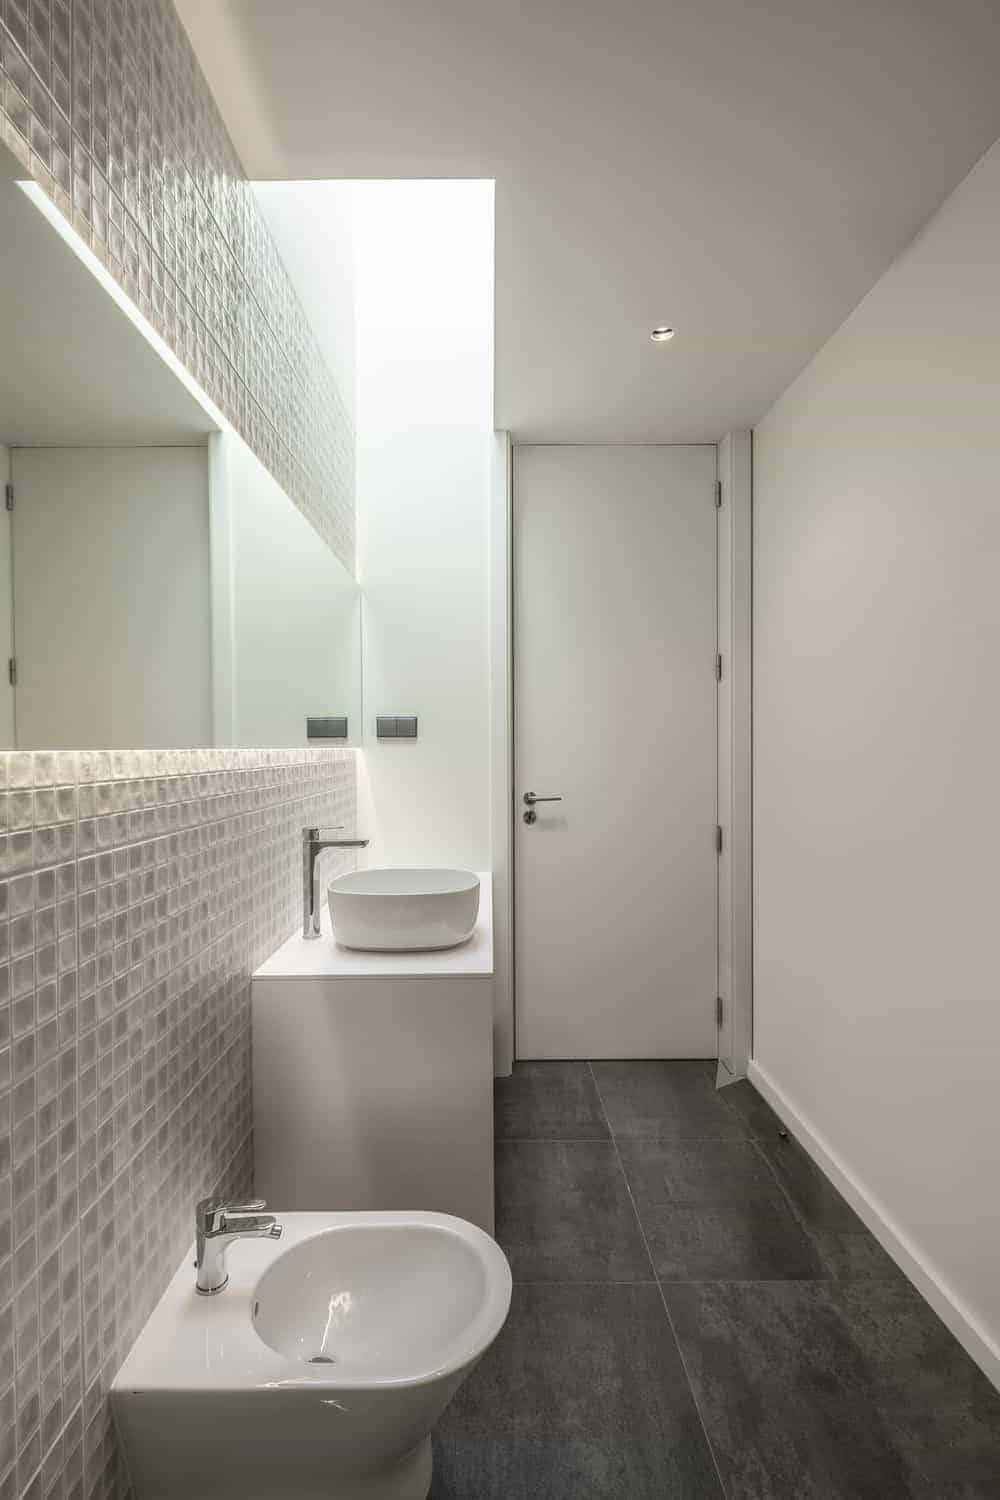 The bathroom has a dark gray flooring tiles that contrast the bright beige walls, tiles and the structure of the sink topped with a lit mirror that extends to the sides.